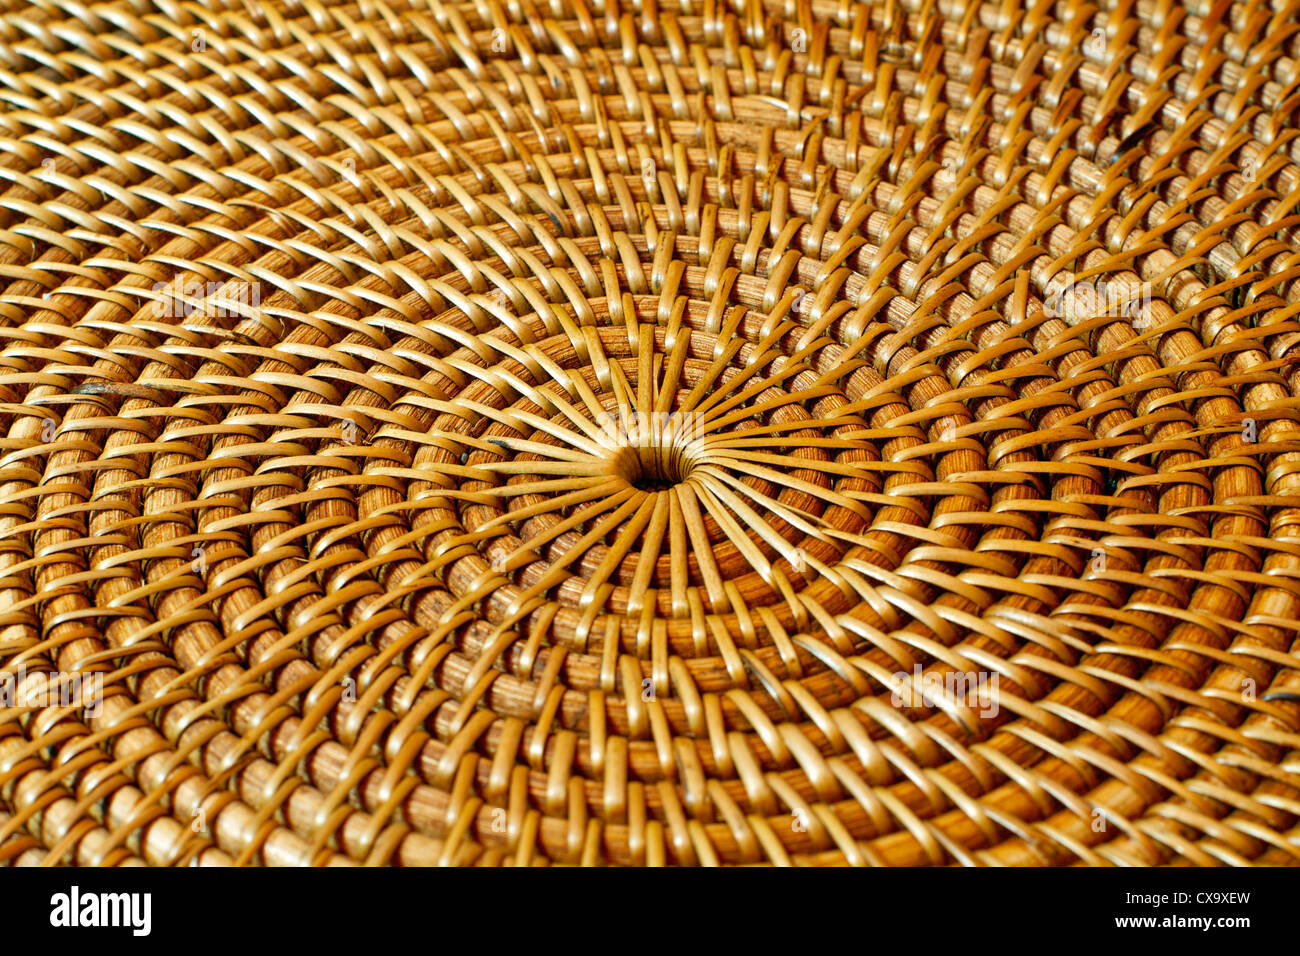 Concentric circular design horizontal, close up of woven wicker - Stock Image